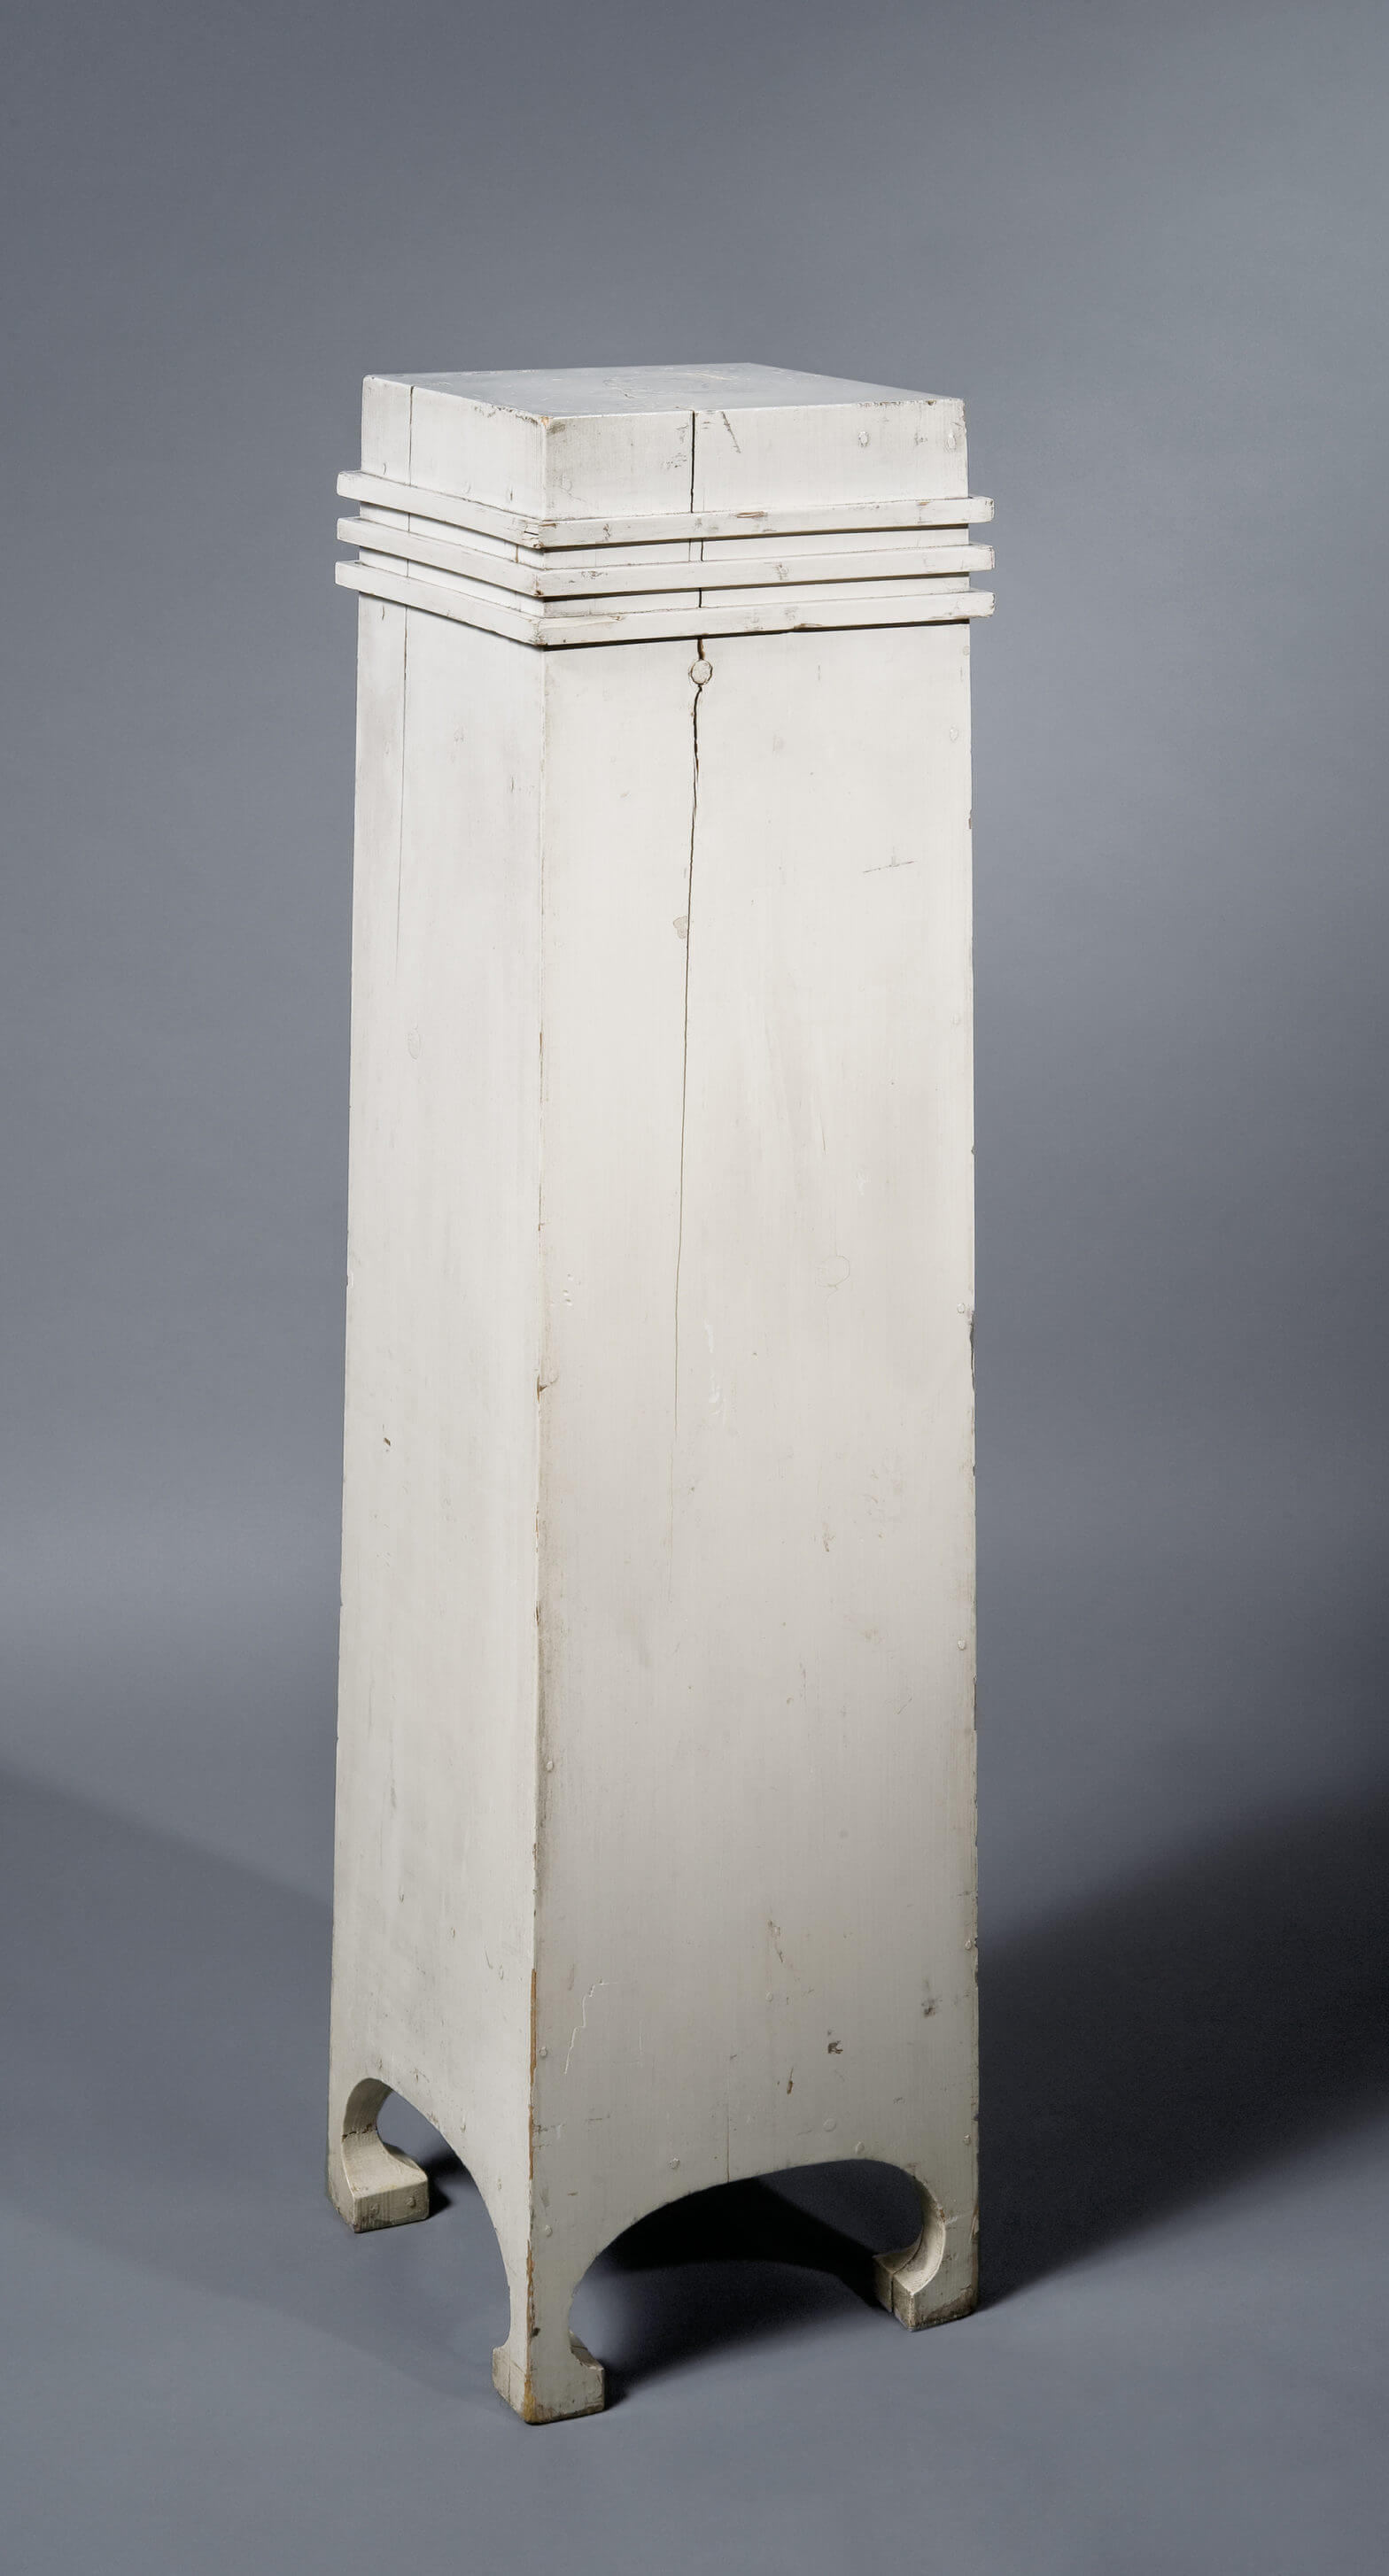 Josef Hoffmann - Pedestal for the first five exhibitions of the Viennese Secession